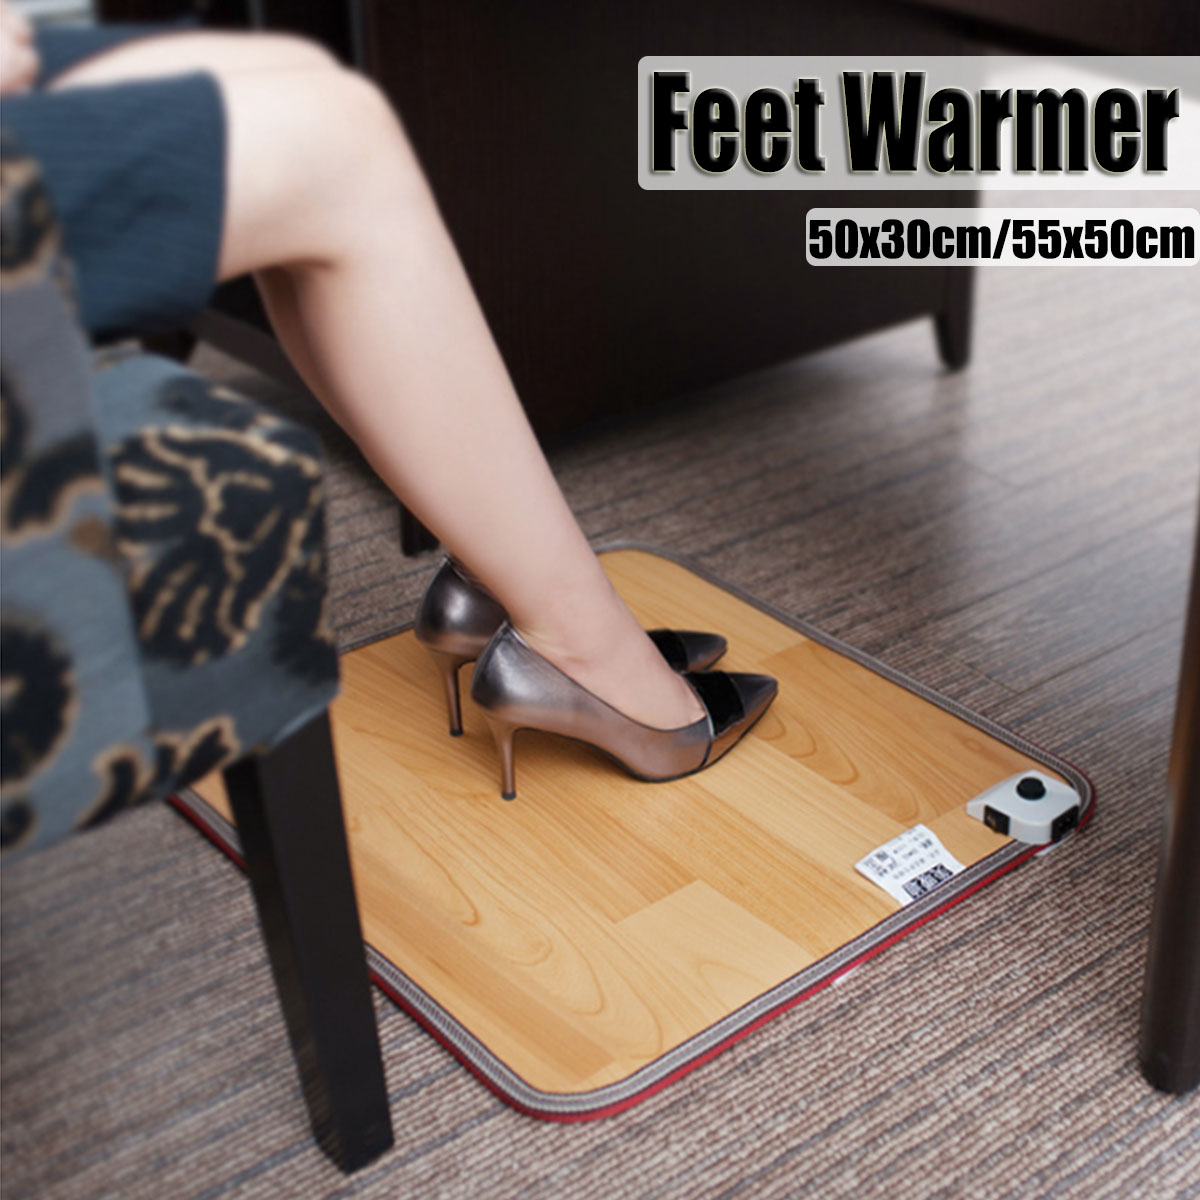 Foot Feet Warmer Electric Heating Mat